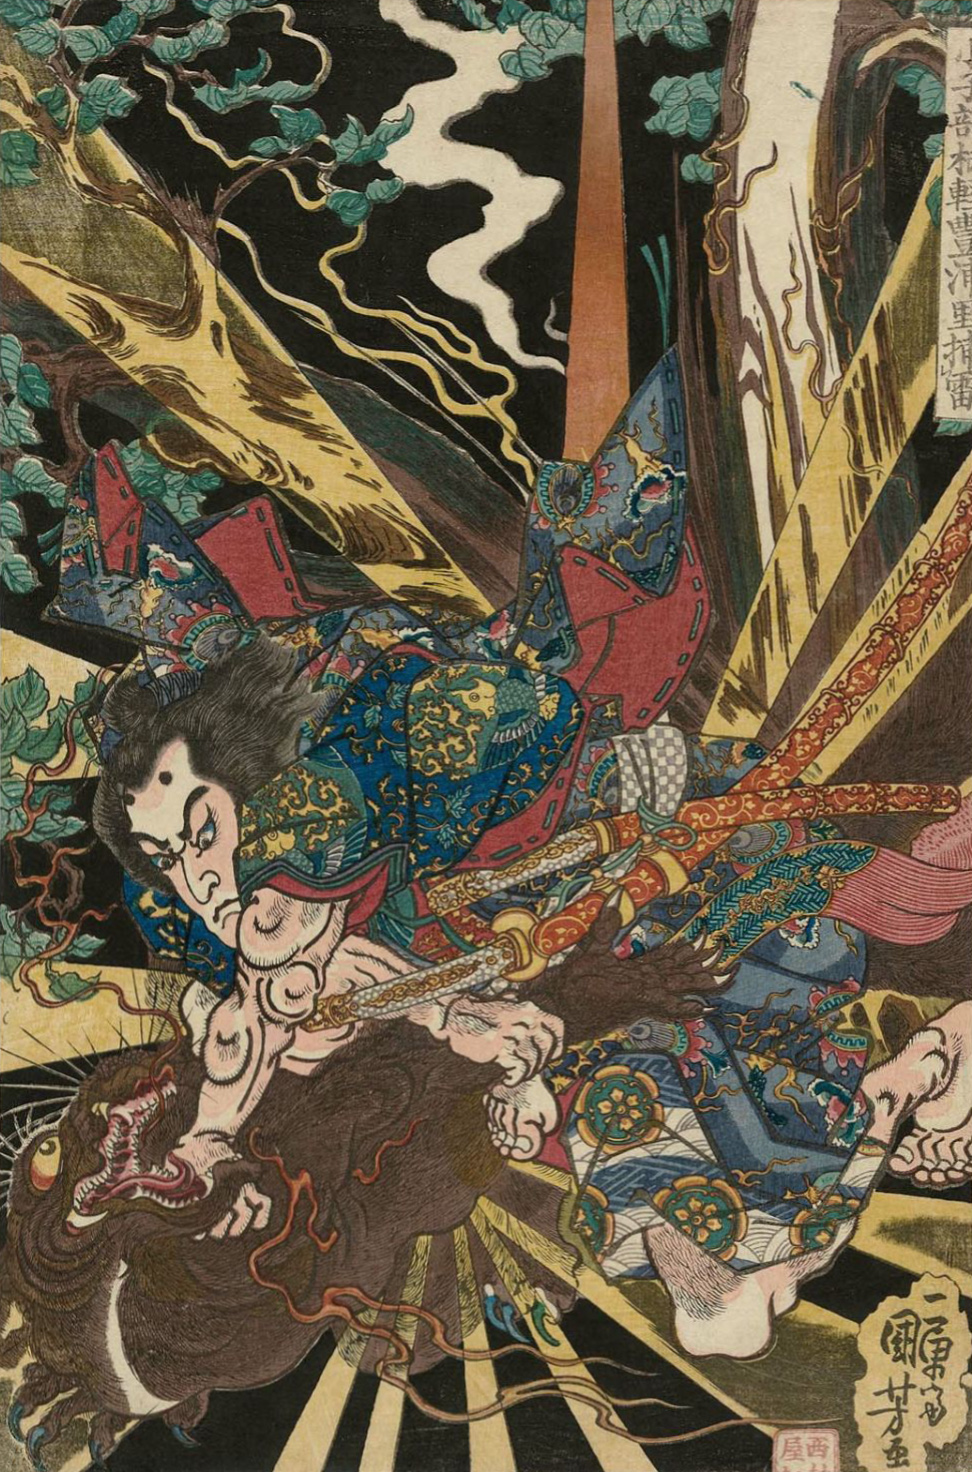 Utagawa Kuniyoshi - Koshibe no Sugaru Captures a Thunder Monster in Toyora Village (Koshibe no Sugaru Toyora no sato ni rai o torau) 1834-35